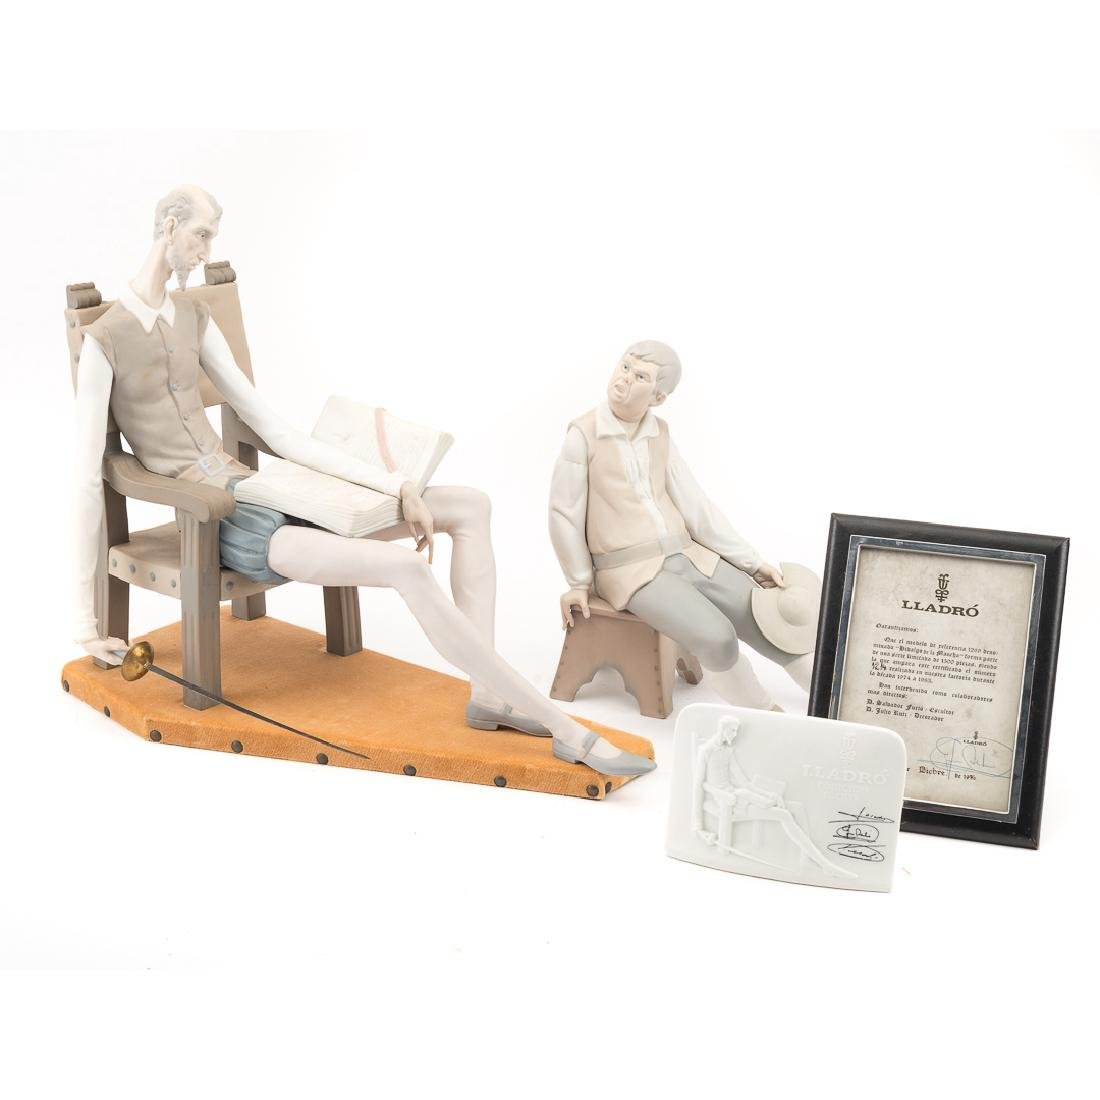 Lladro porcelain figures: Don Quixote and Sancho